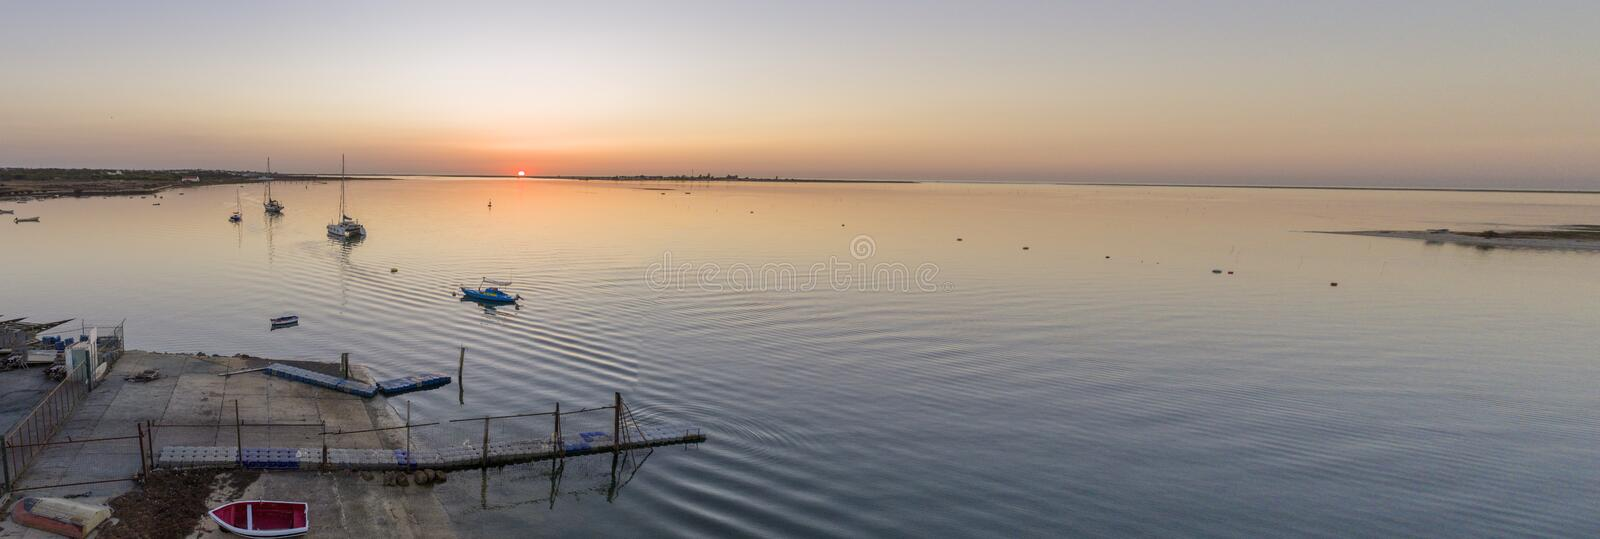 Sunset aerial panoramic seascape view of Olhao dockyard, waterfront to Ria Formosa natural park royalty free stock images